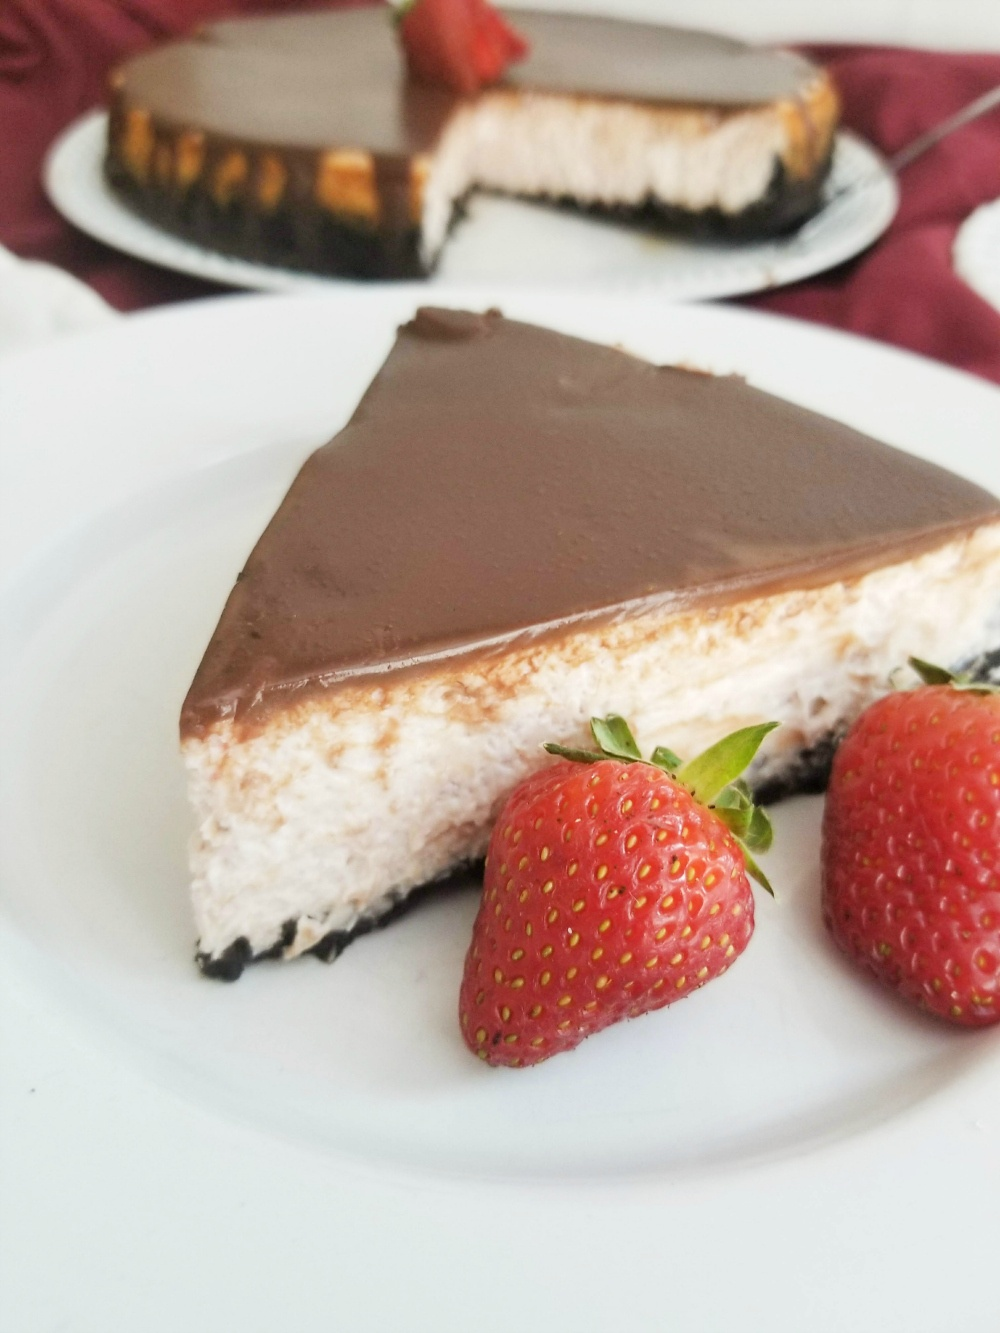 Strawberry Cheesecake with Chocolate Ganache